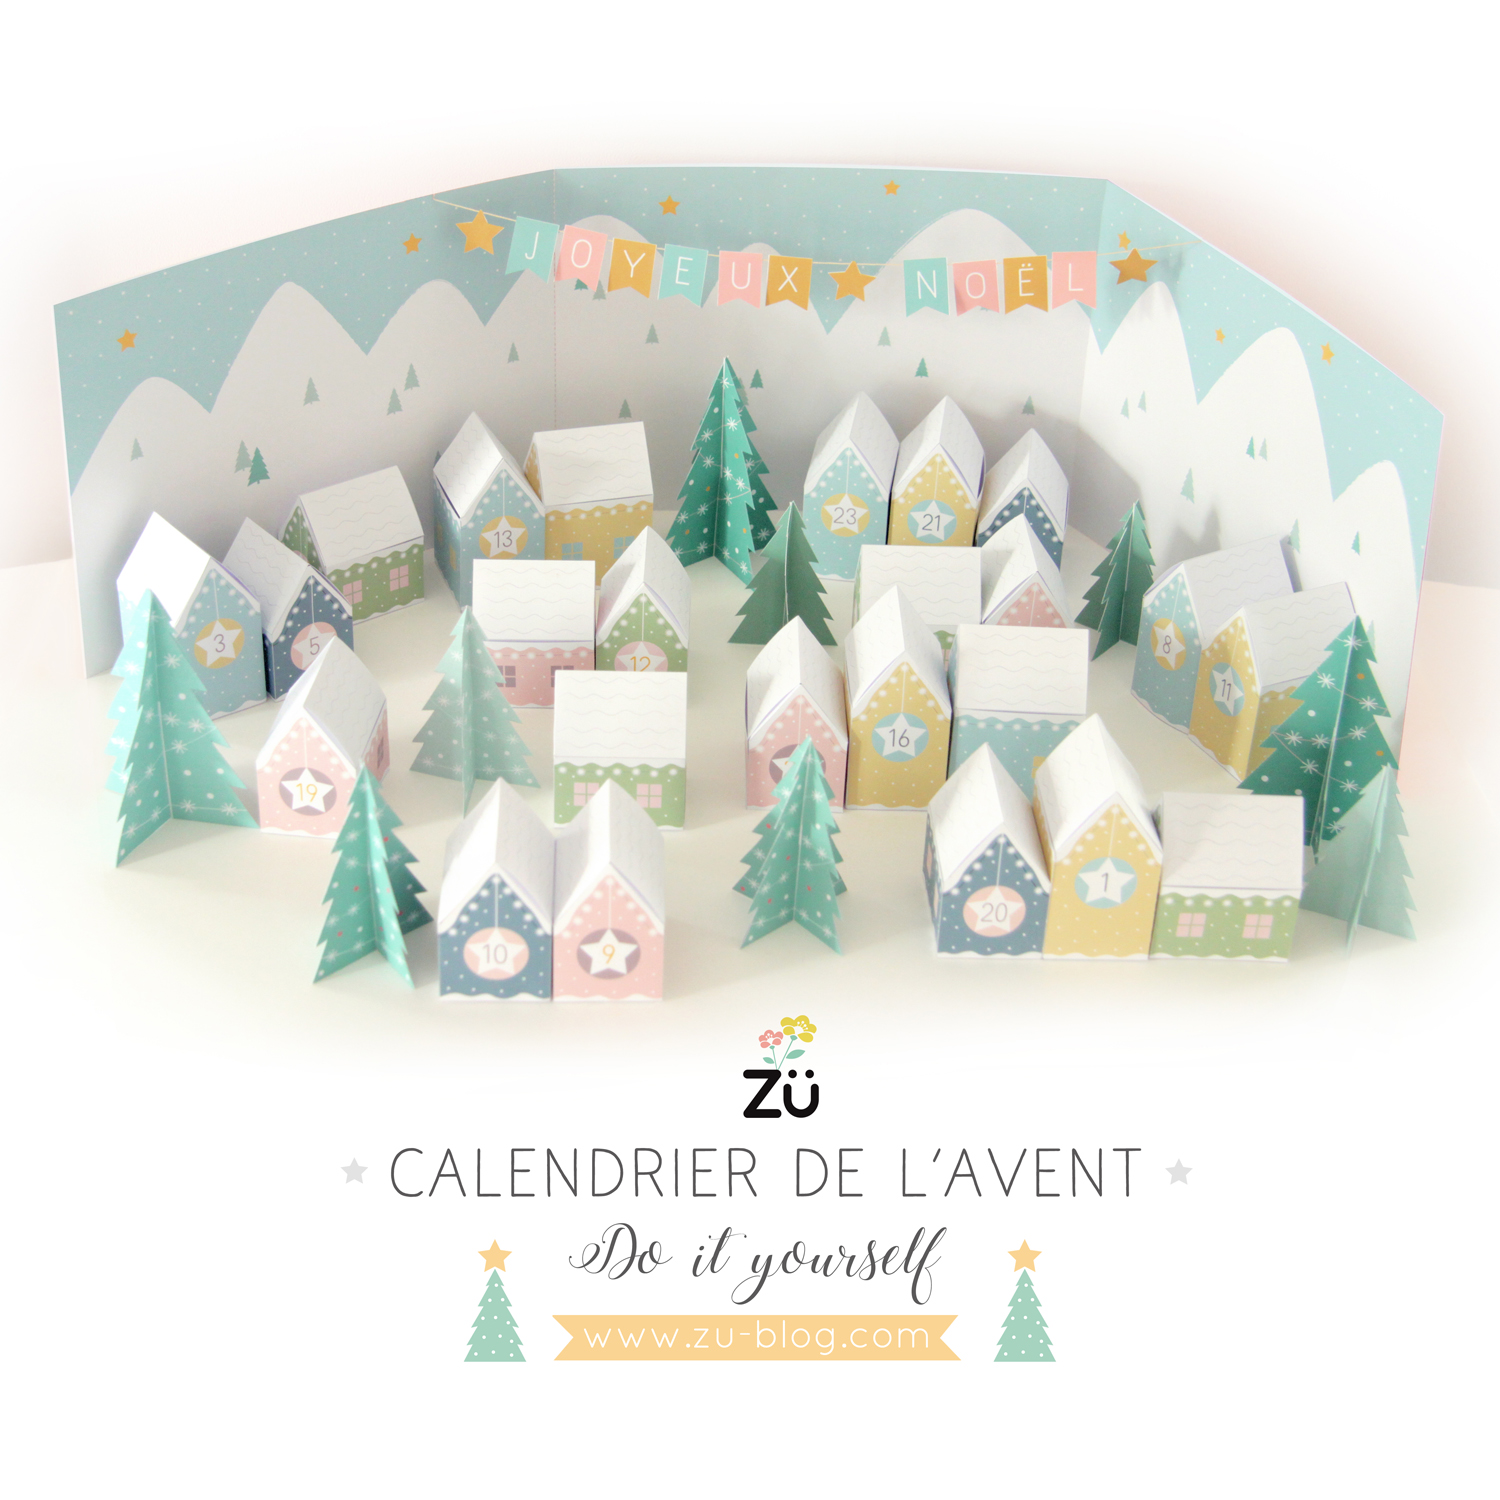 Calendrier De L Avent Pinterest.Diy Calendrier De L Avent Blog Traits D Co Magazine